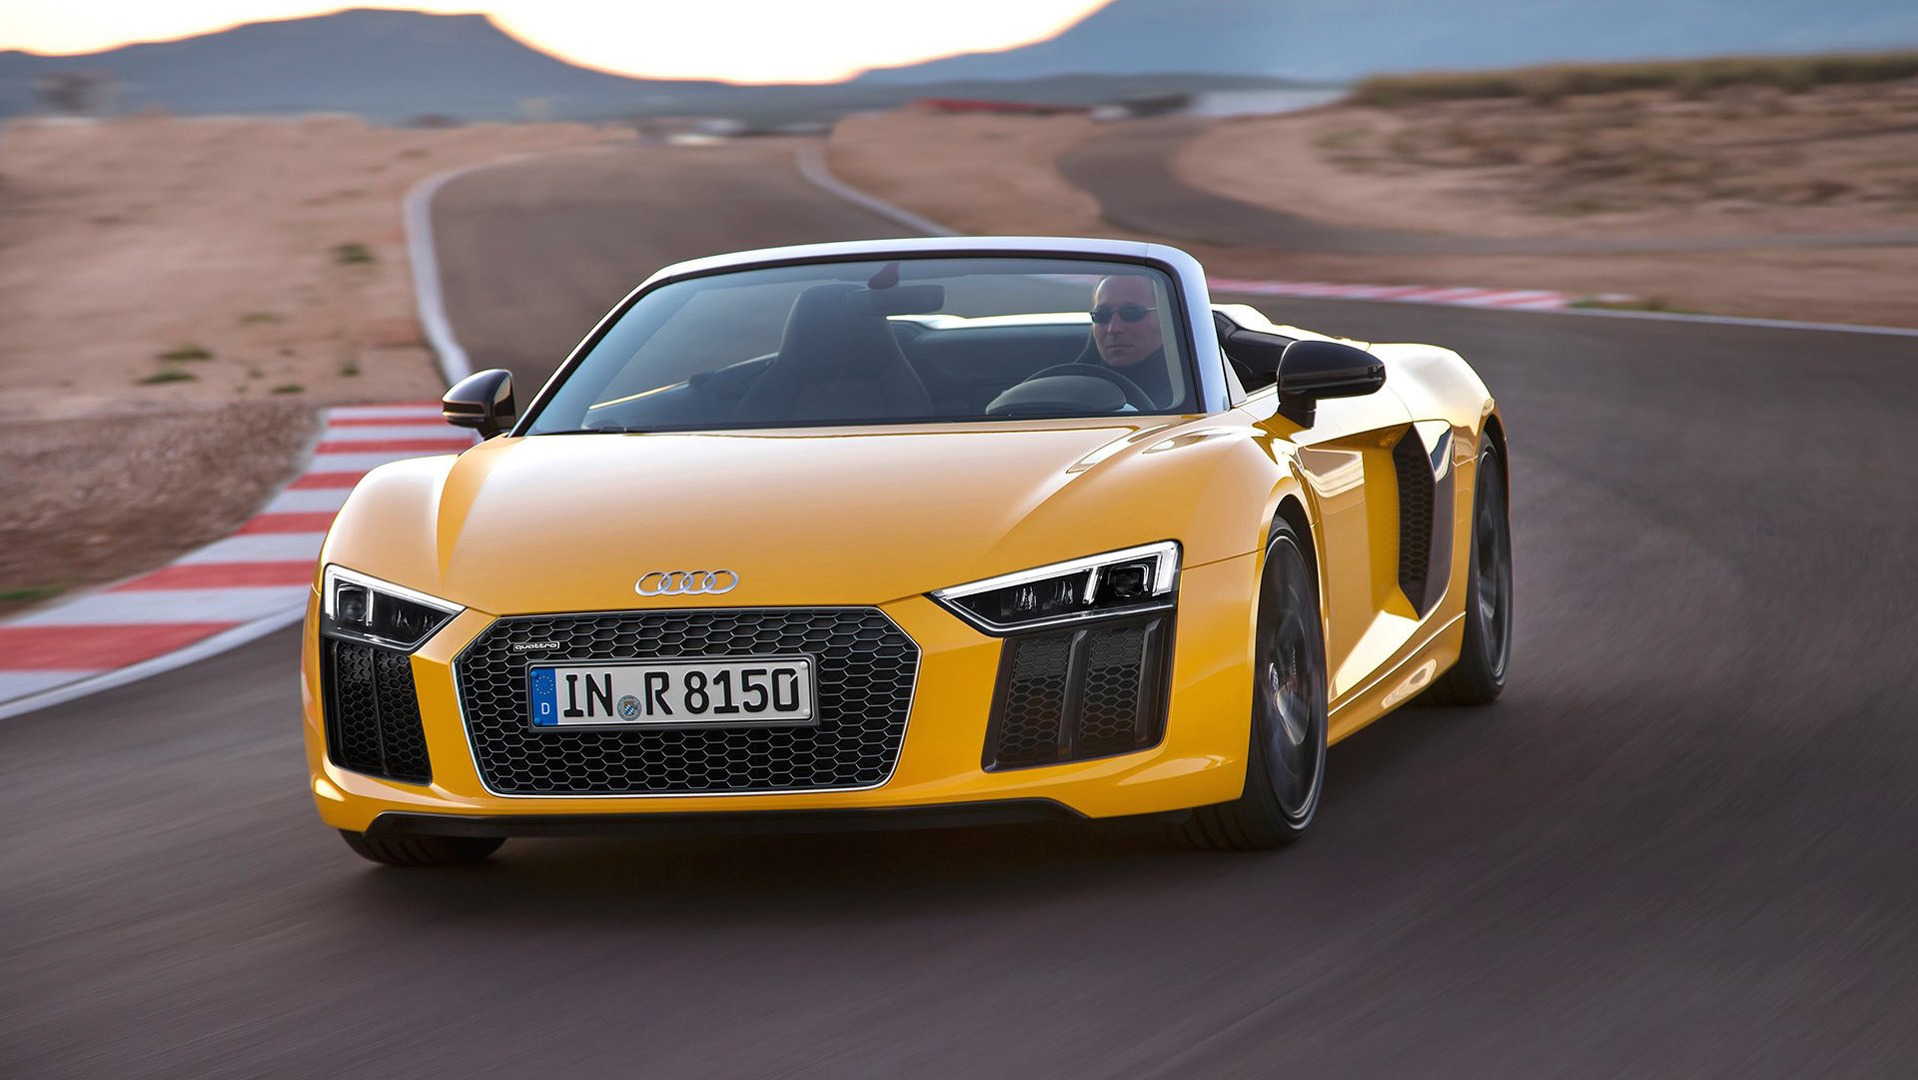 Audi R V Spyder Priced At In The US - Audi r8 v10 spyder